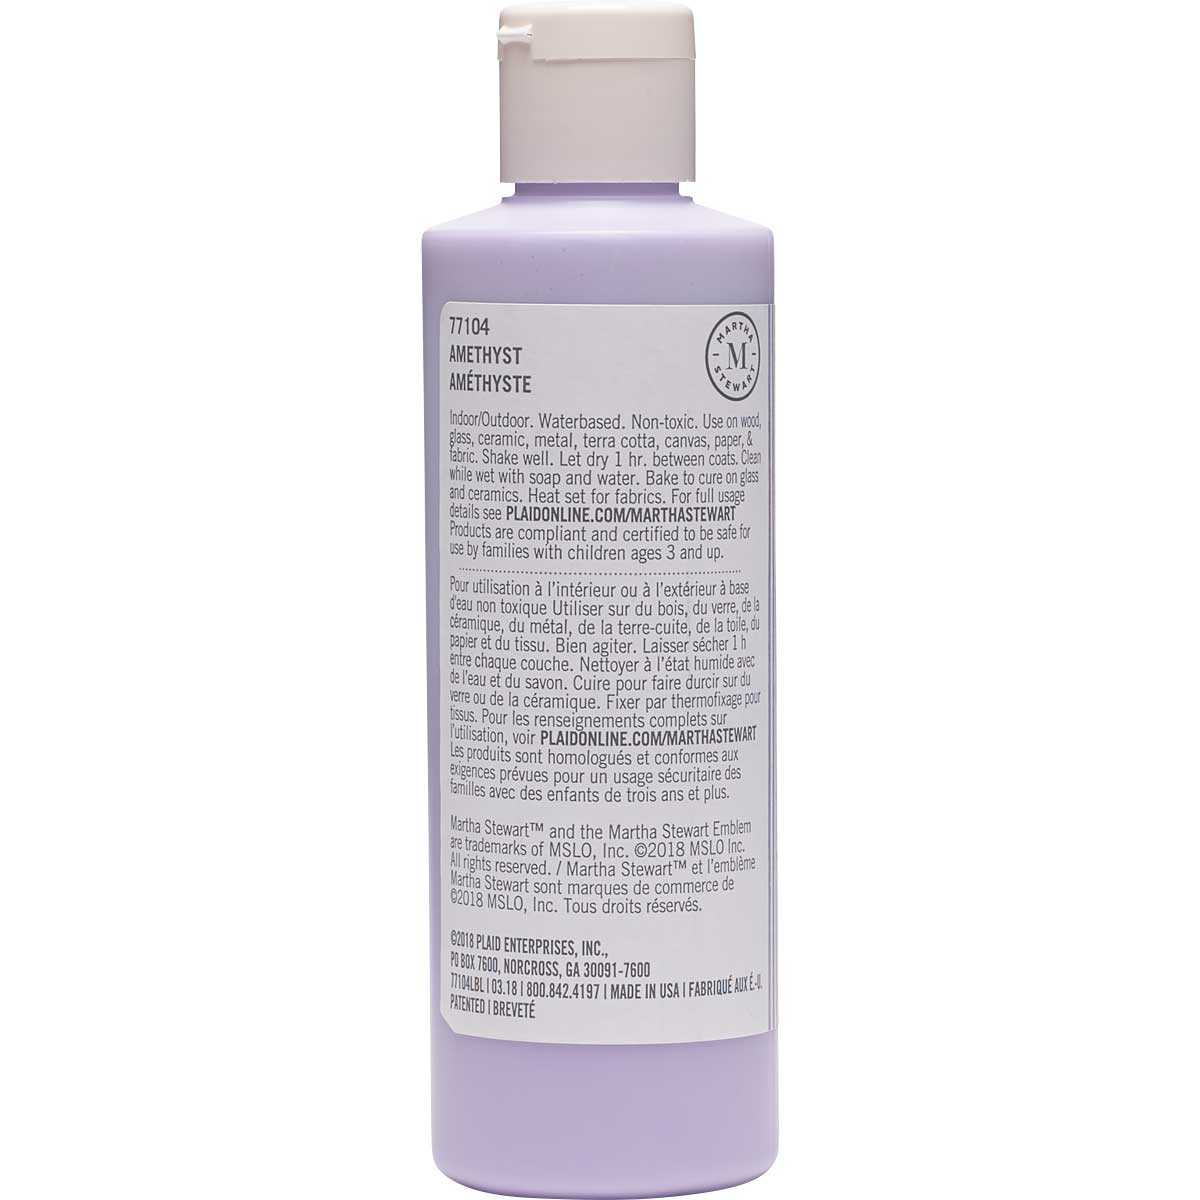 Martha Stewart ® Multi-Surface Satin Acrylic Craft Paint CPSIA - Amethyst, 8 oz. - 77104